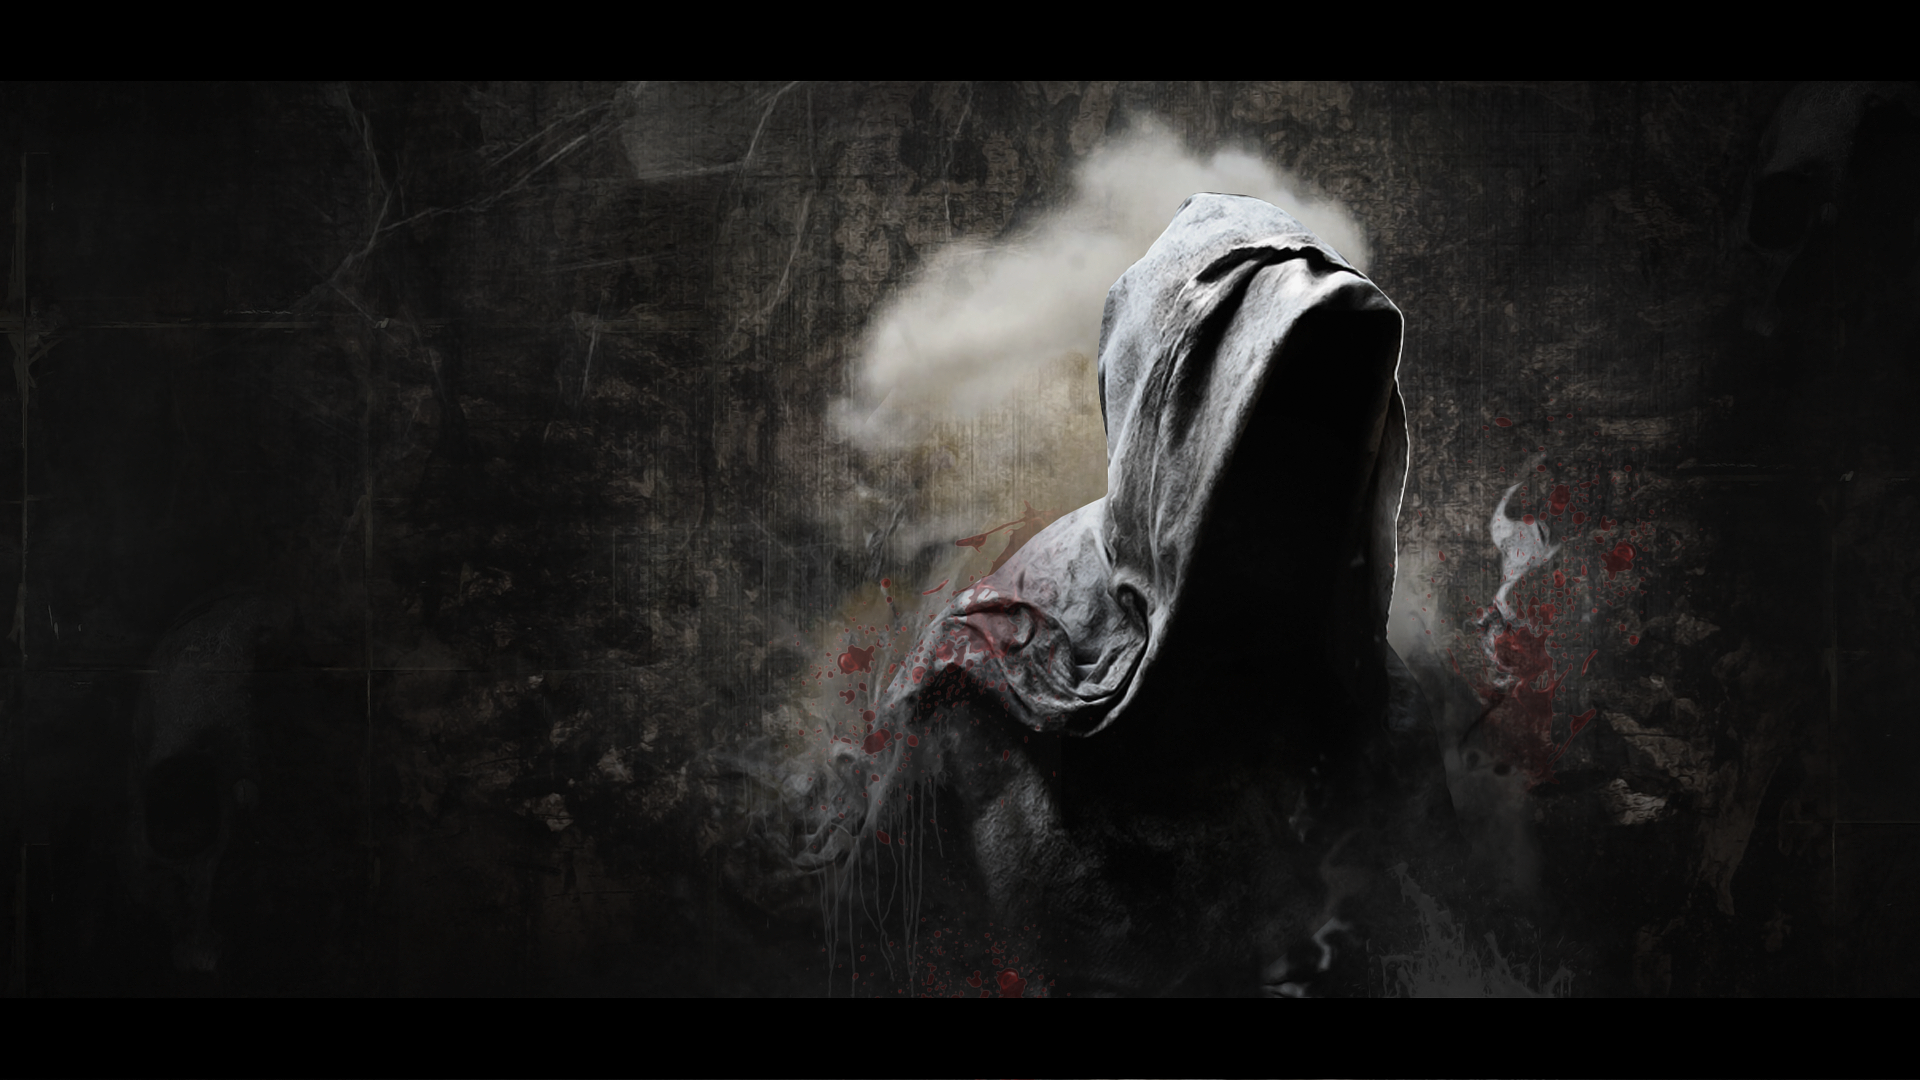 Darkness wallpapers high quality download free - Hd wallpapers of darkness ...